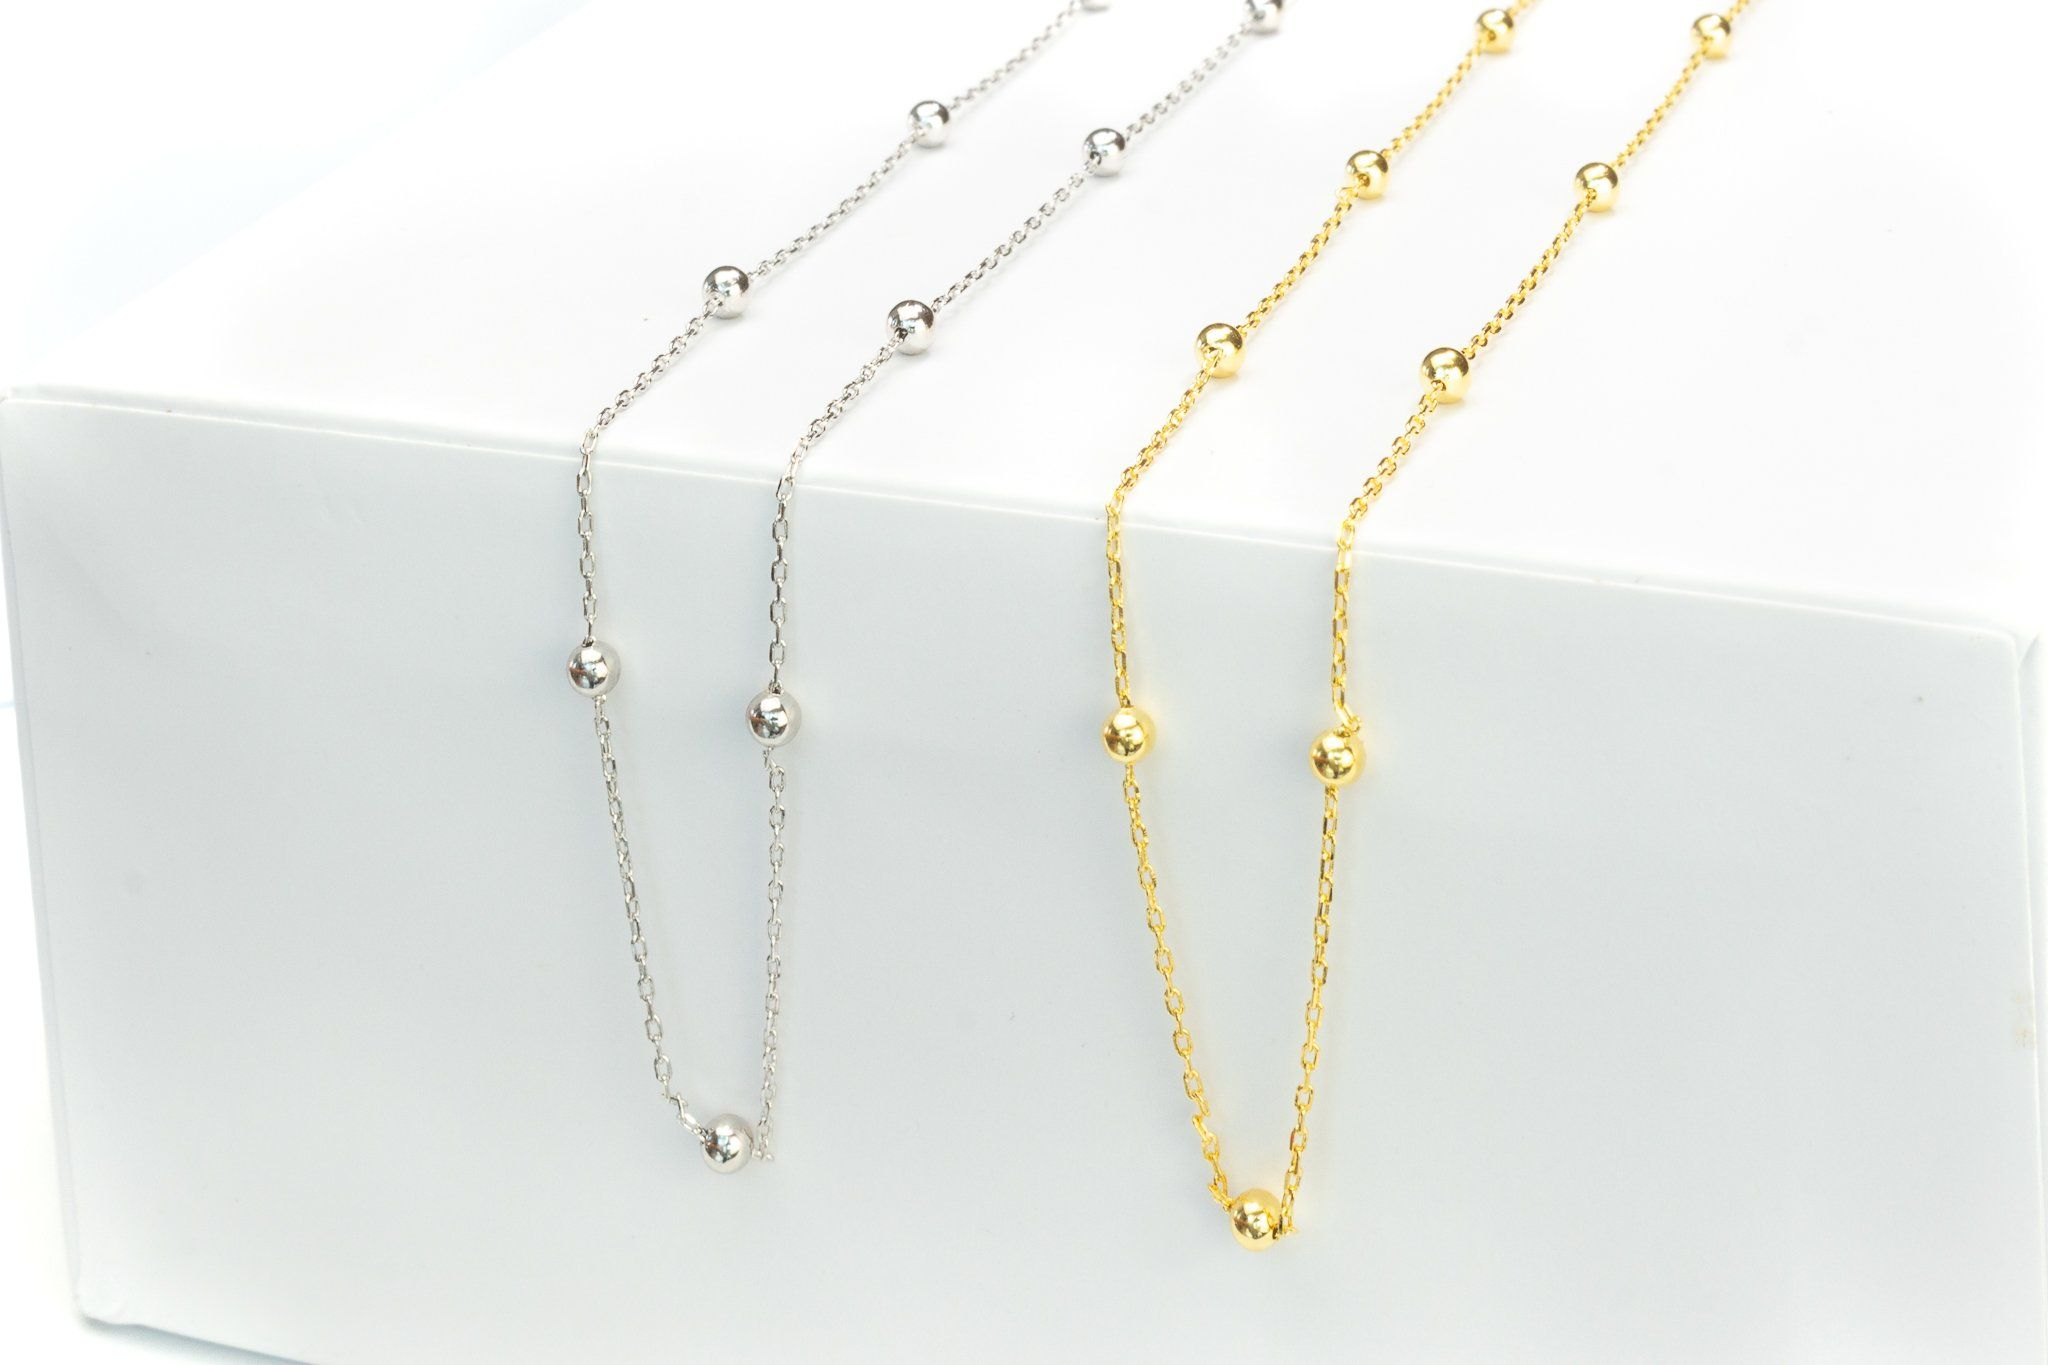 """This delicate choker is made of pure sterling silver, fastens with a simple clasp, and measures approximately 14 inches with a 2-inch extension (16"""" in total.) A truly versatile sterling silver necklace; while lightweight for comfortable all-day wear, the delicate pattern makes it memorable at the same time. Also available in 14K gold plated The unique chain-and-bead texture of Amore brings to mind little raindrops, making this lightweight and slender choker a lovely finishing touch to accent a"""